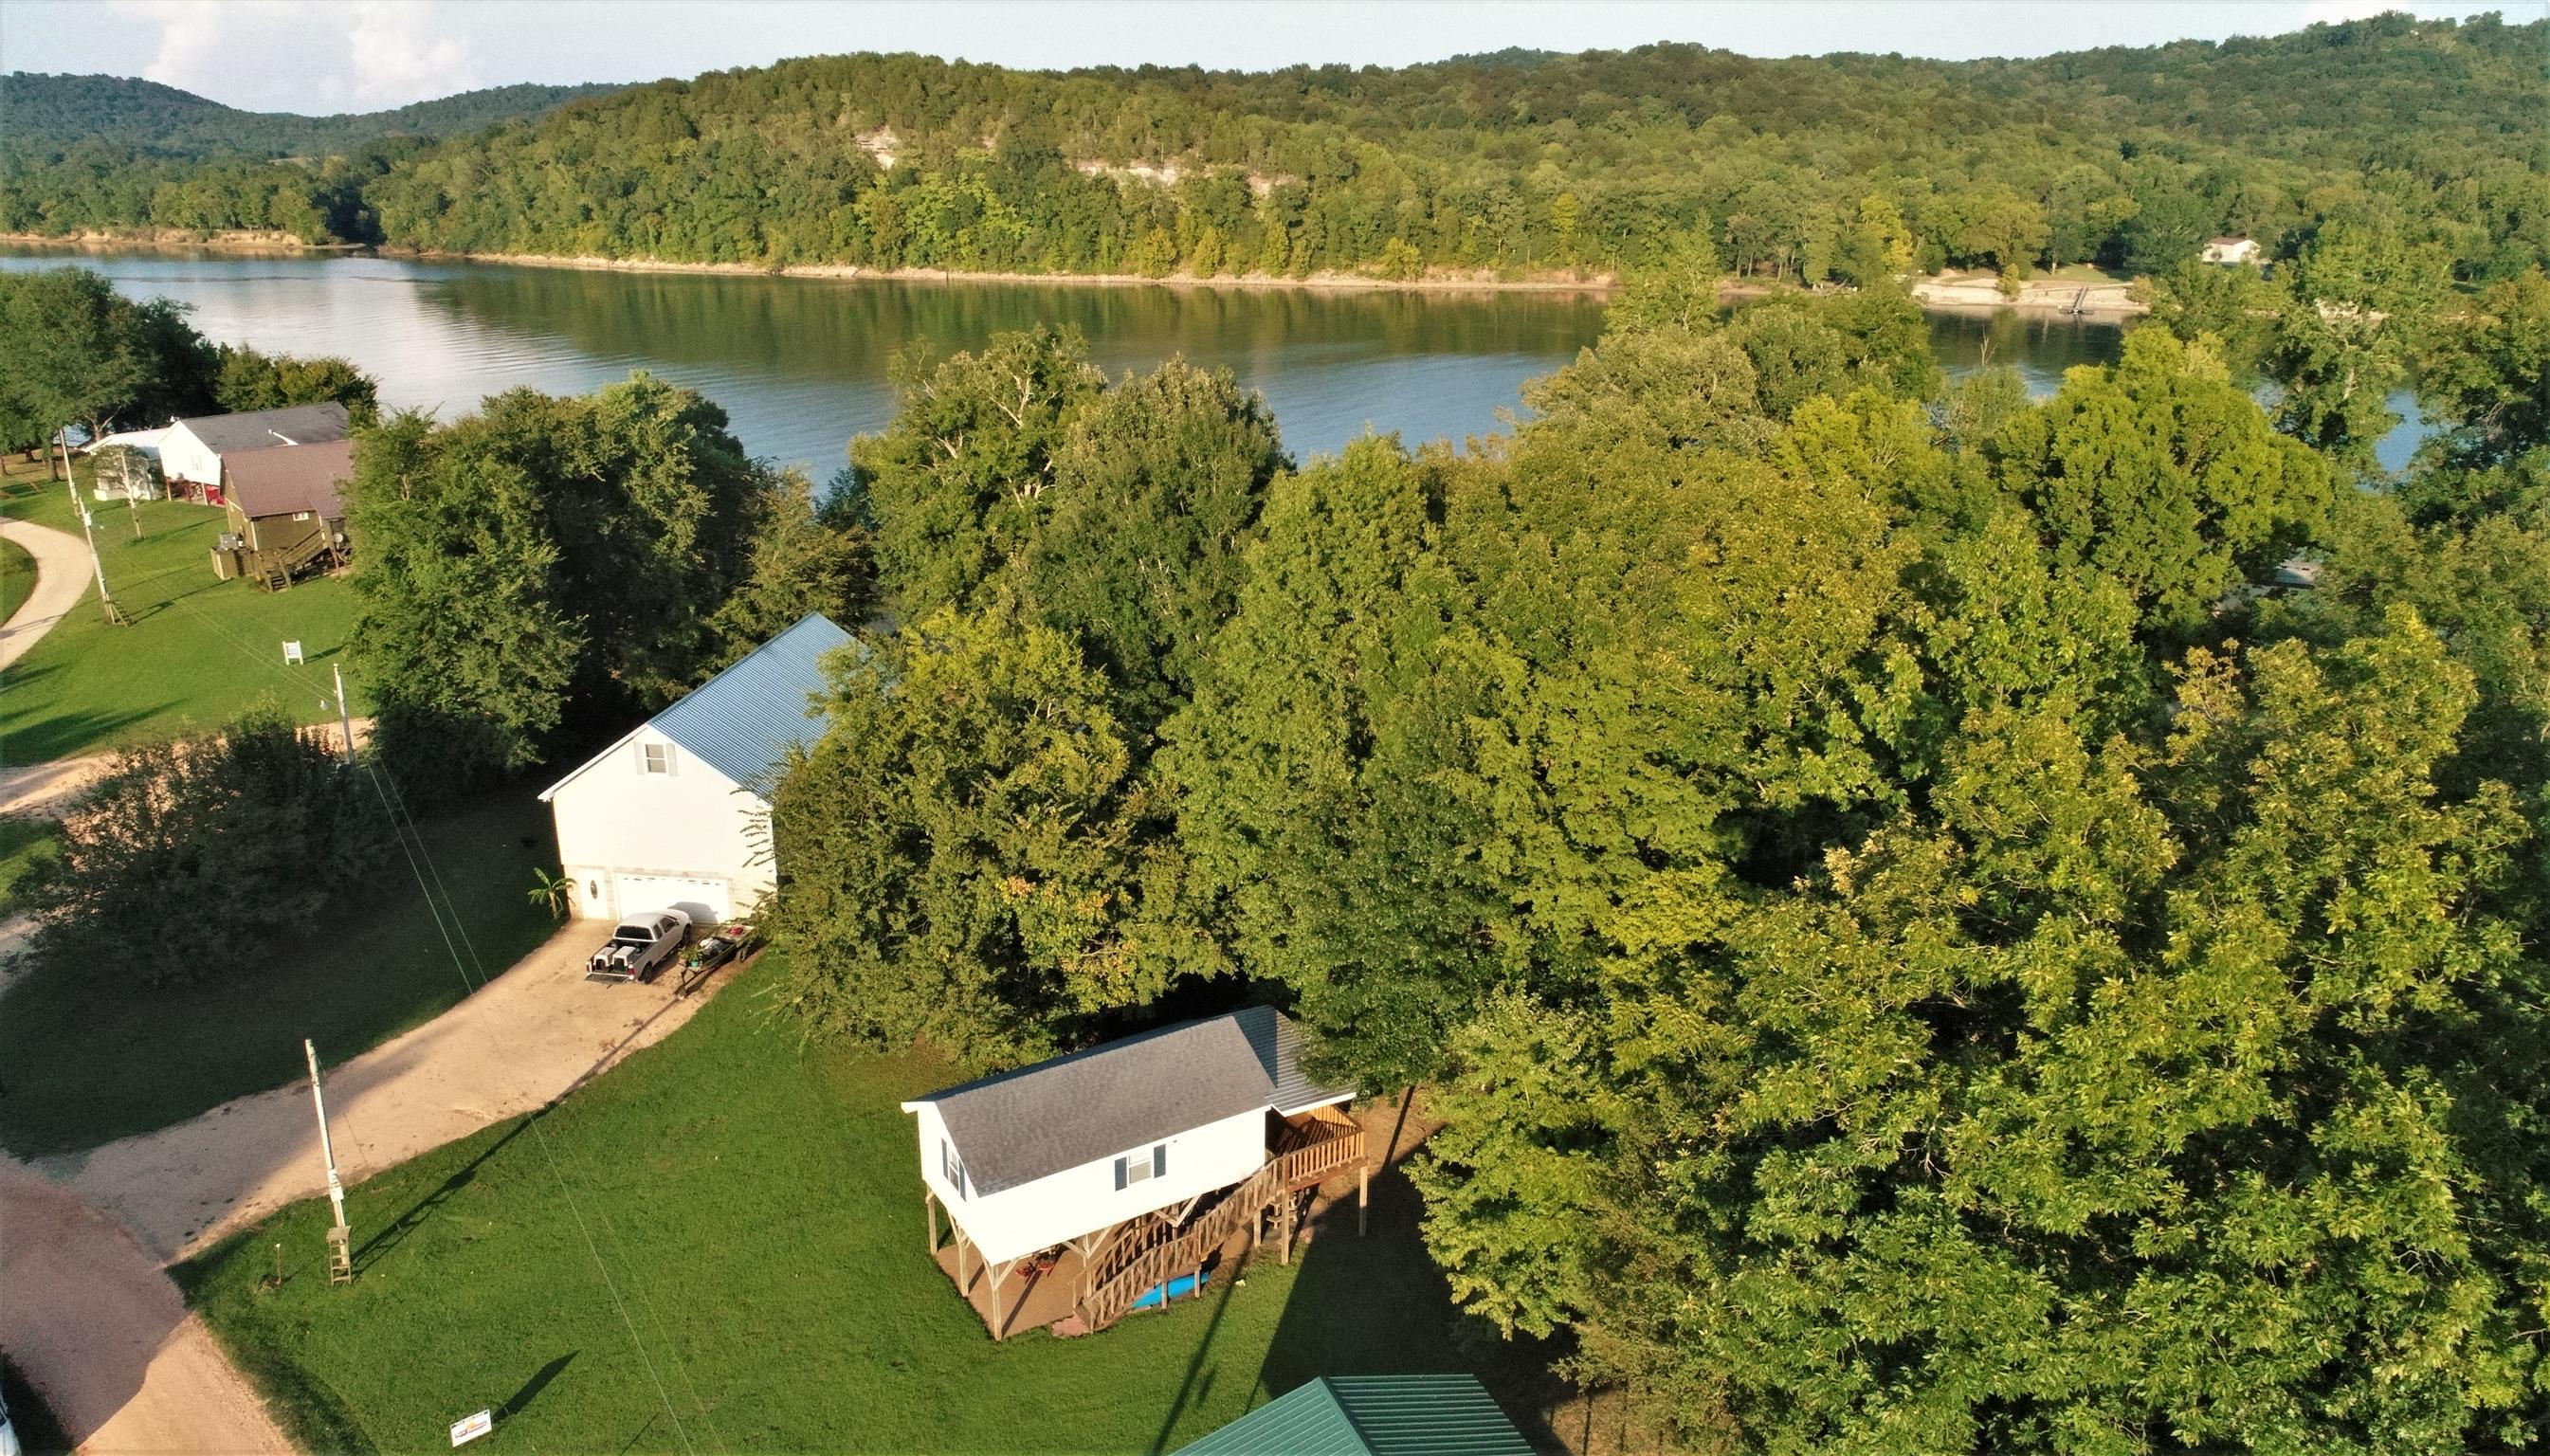 25 Creekside View Ln, Decaturville, TN 38329 - Decaturville, TN real estate listing